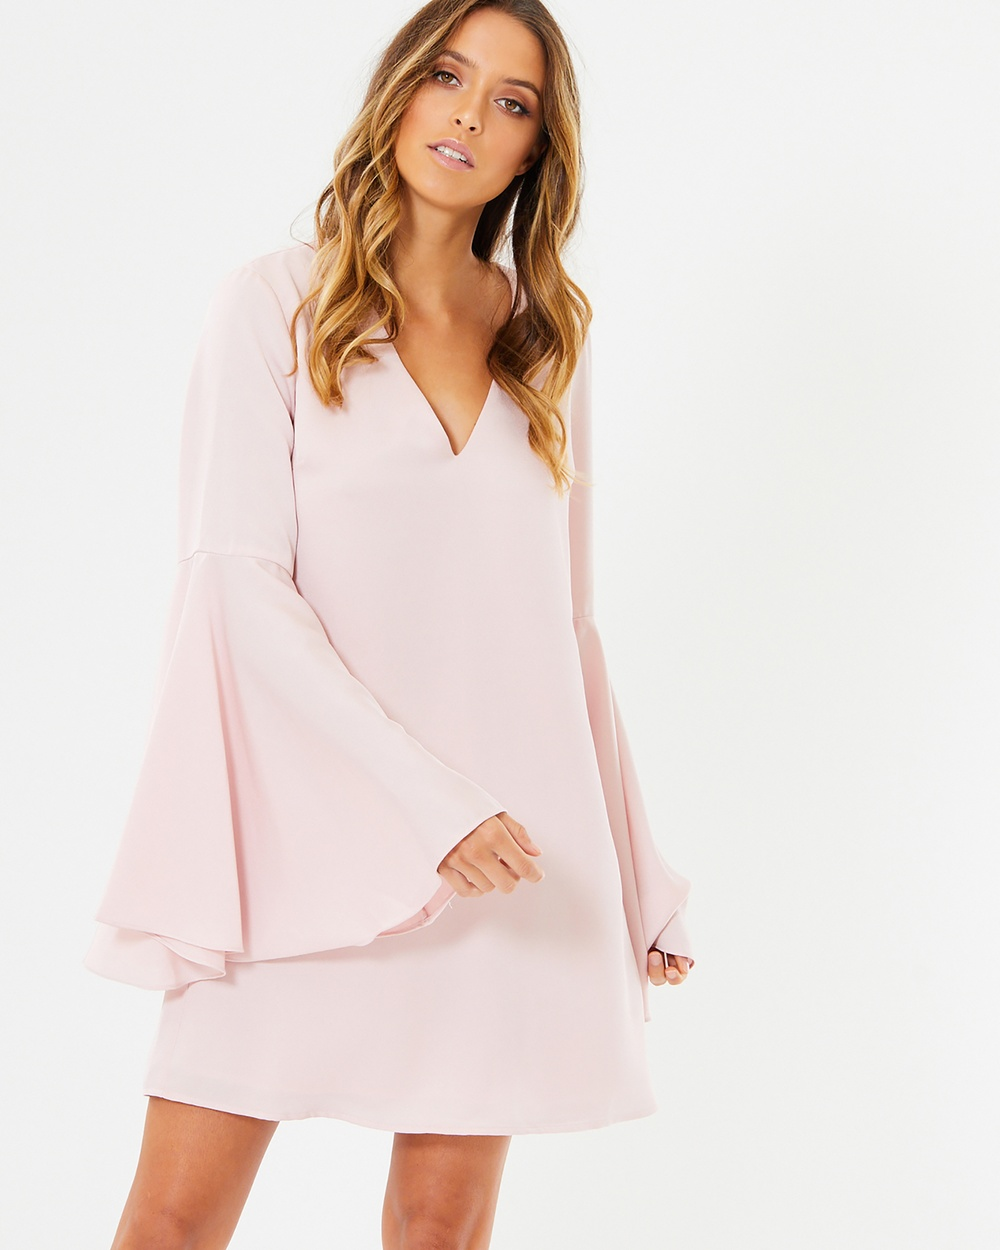 Calli Lea Dress Dresses Pink Lea Dress